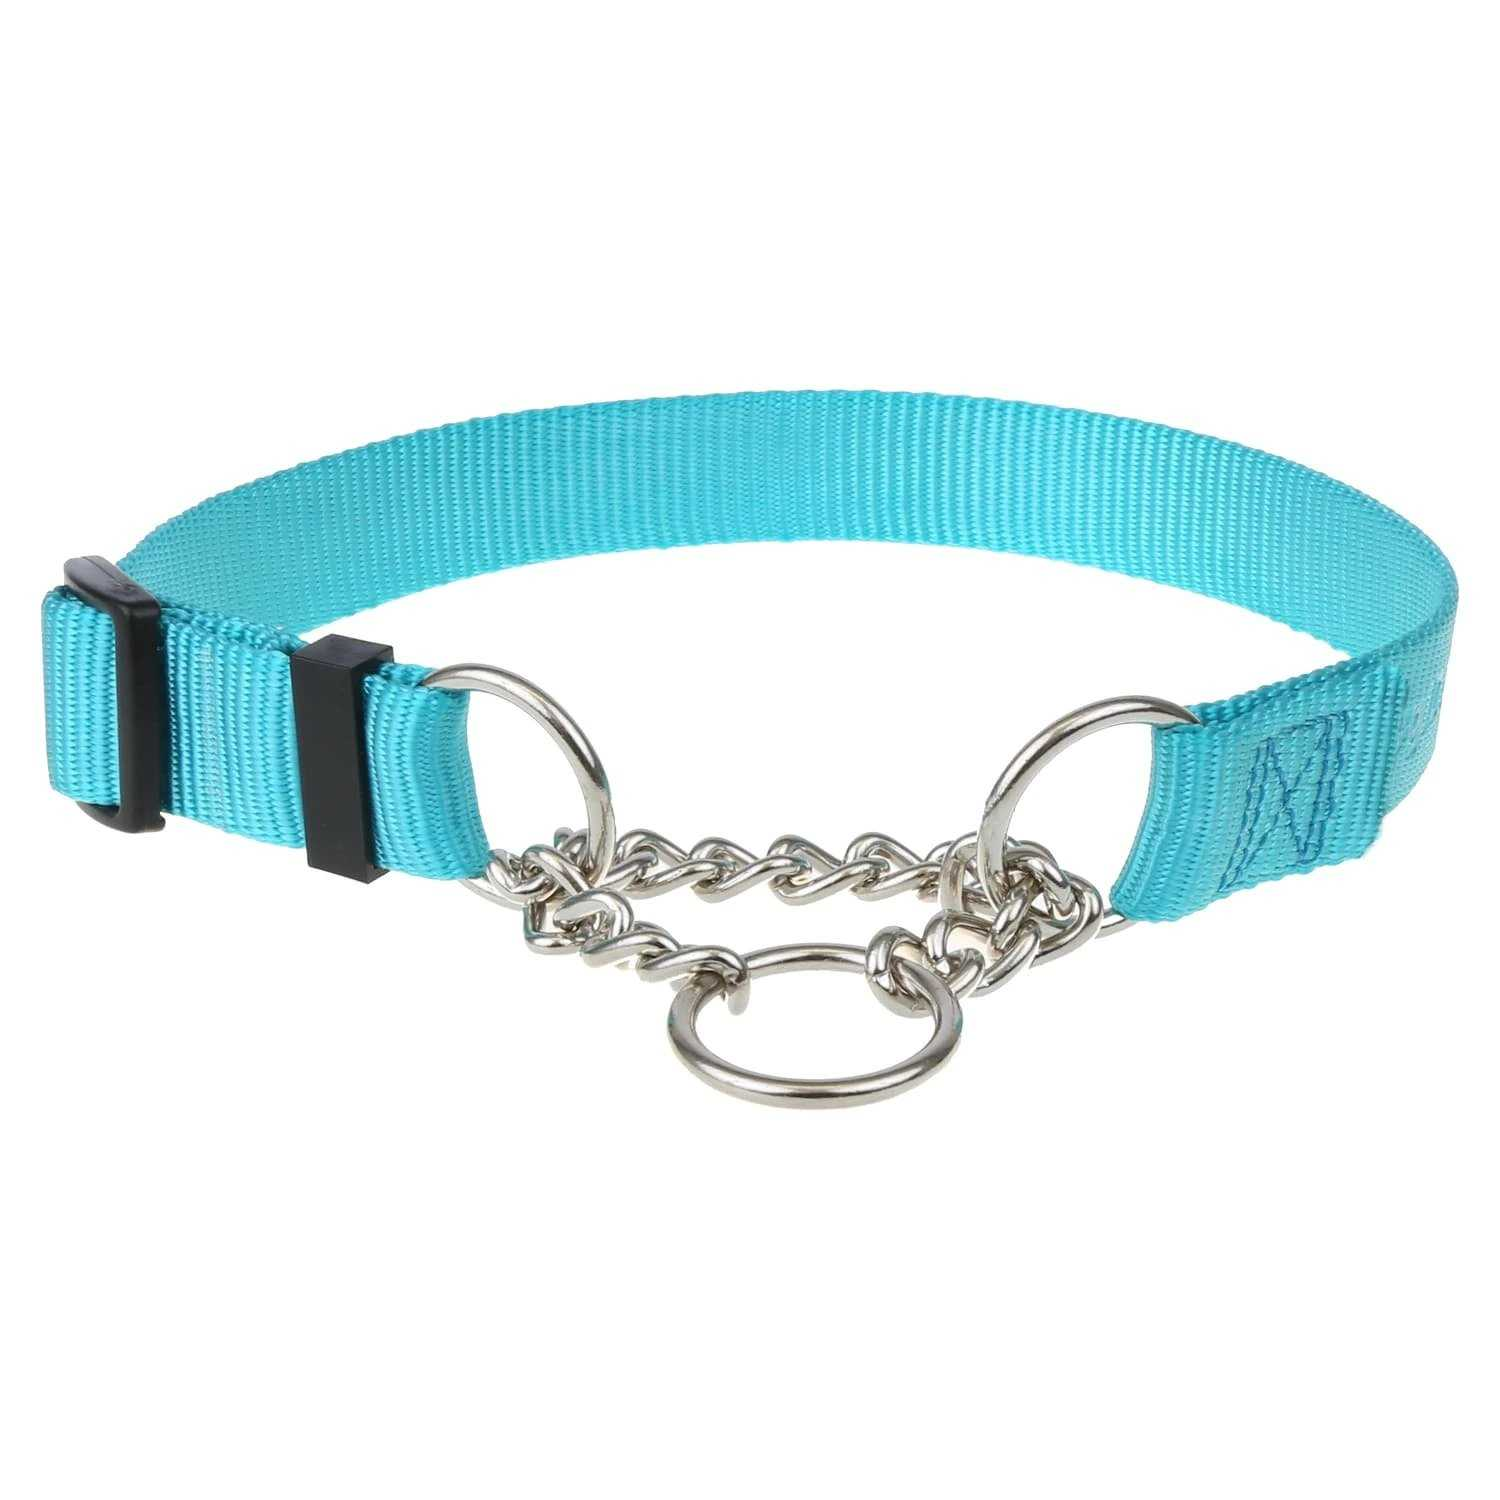 Turquoise Nylon Chain Martingale Collar